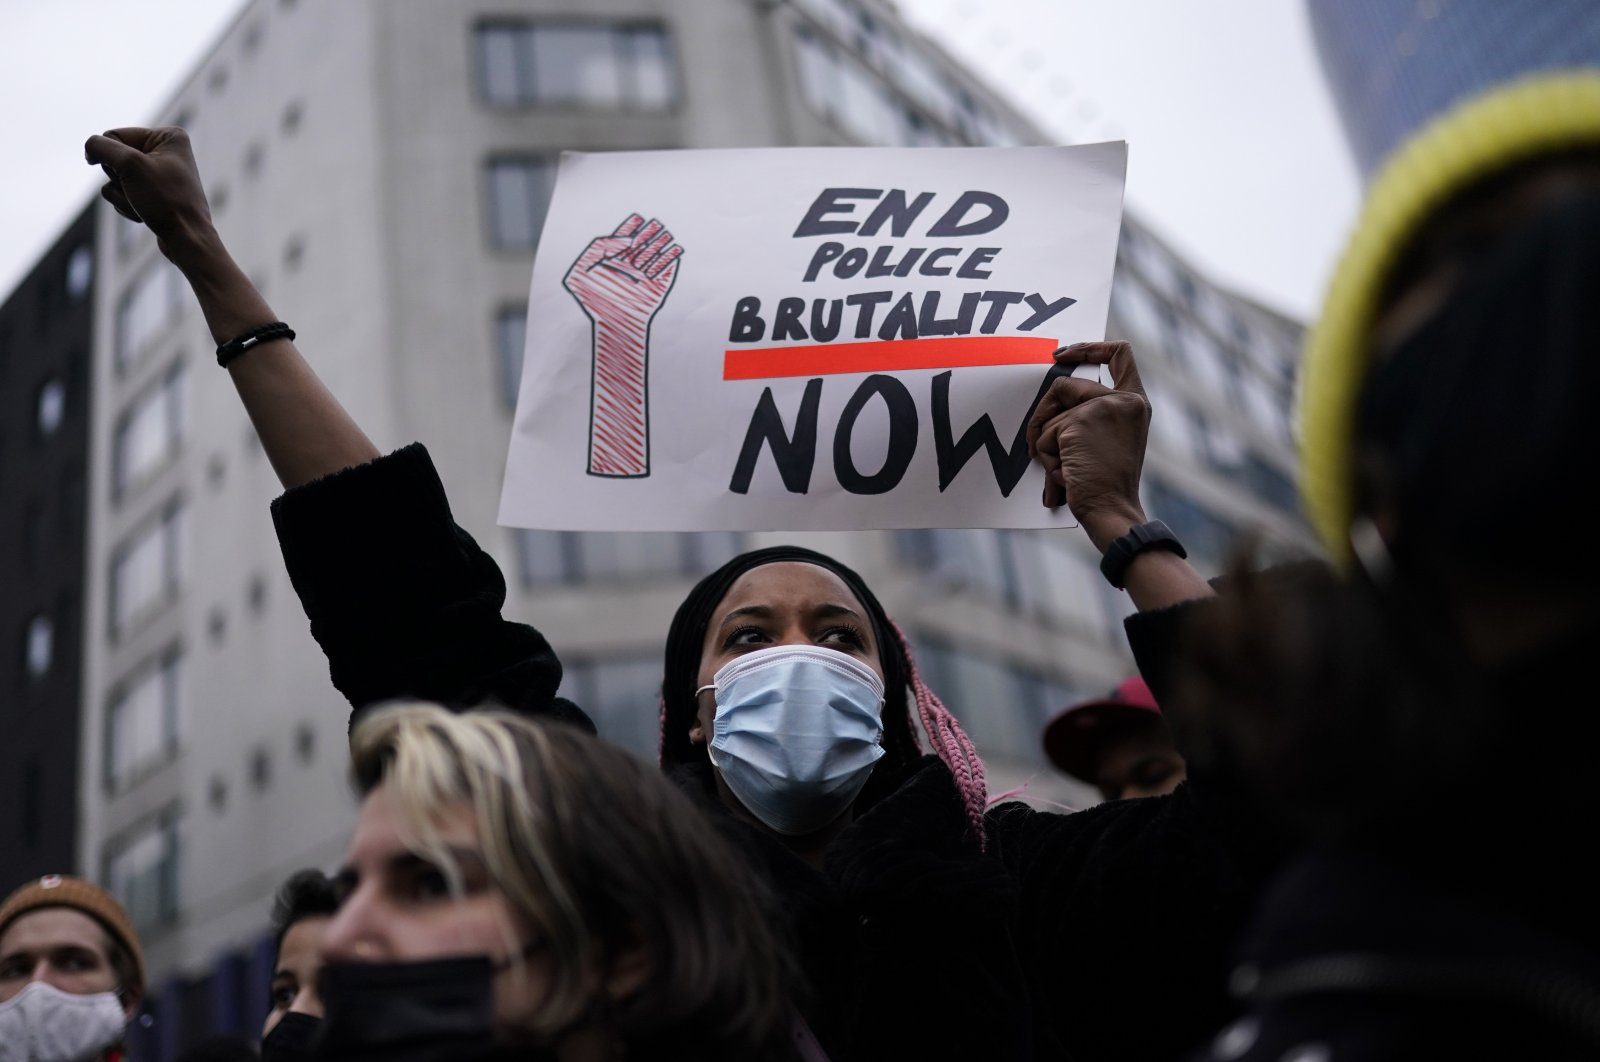 Protesters shout slogans in the capital Brussels, Belgium, Jan. 13, 2021. (AP Photo)